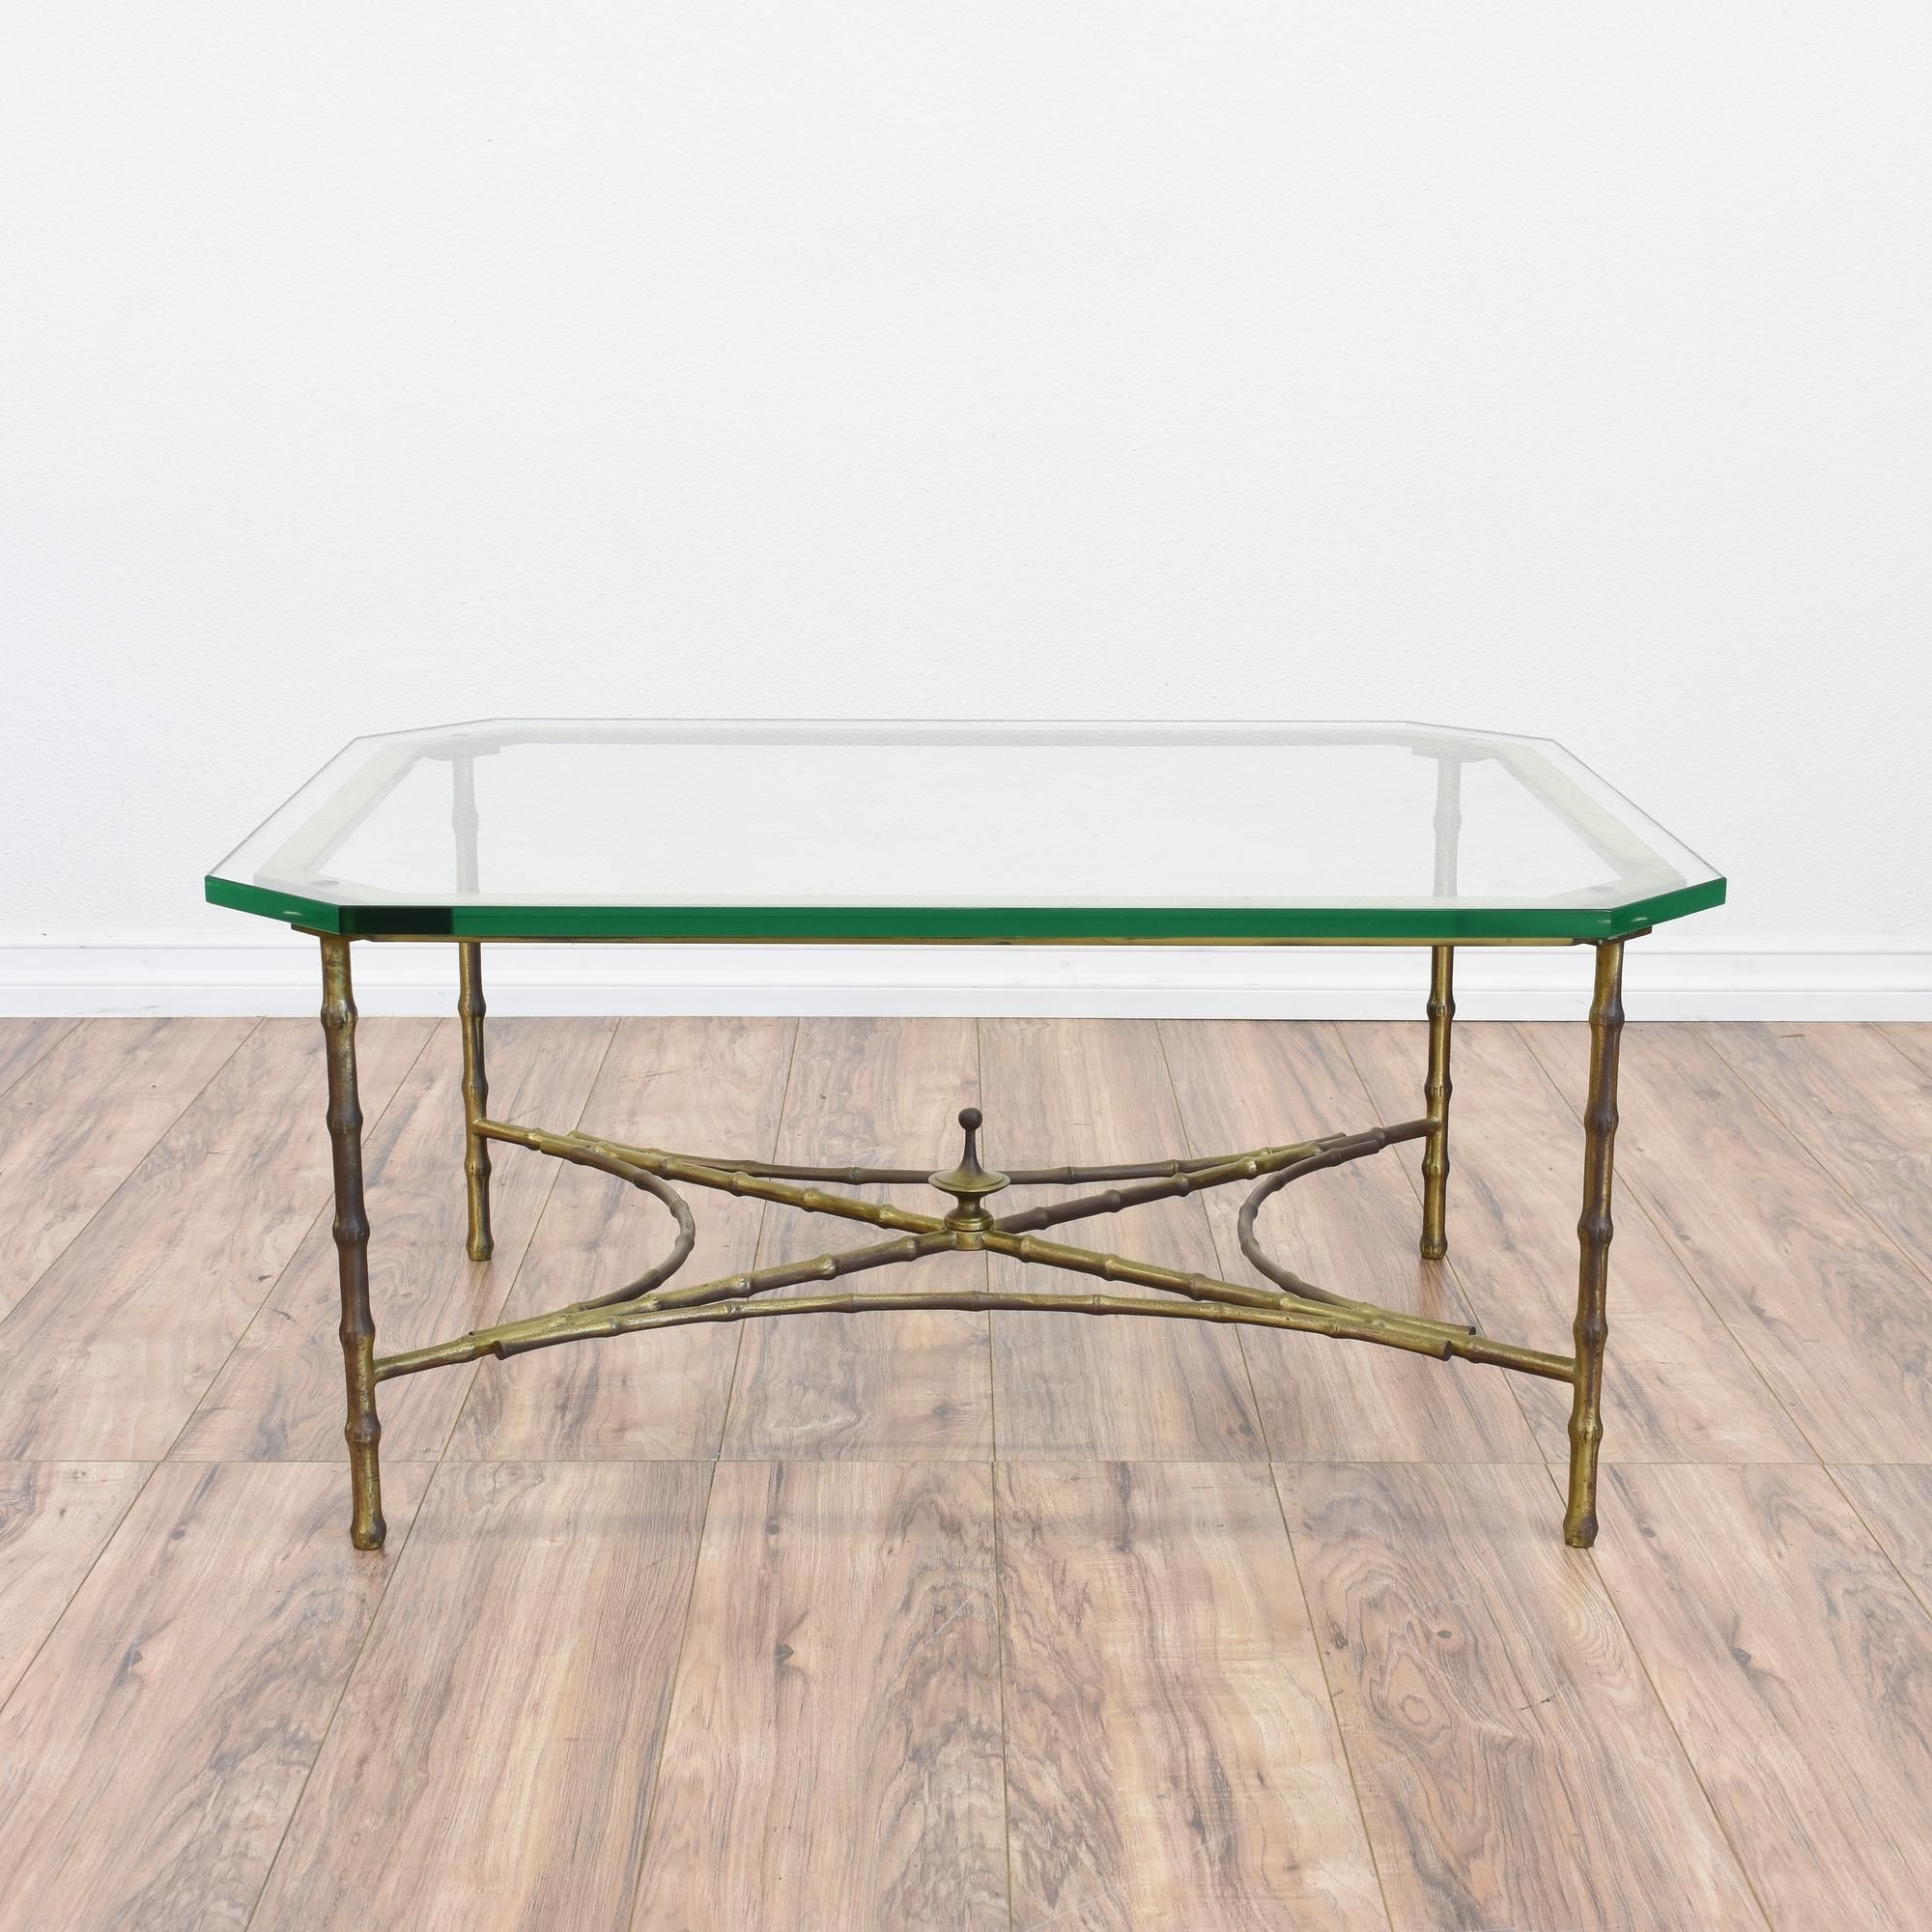 This Regency Coffee Table Is Featured In A Metal With A Shiny Brass Pertaining To Most Current Rectangular Brass Finish And Glass Coffee Tables (View 17 of 20)